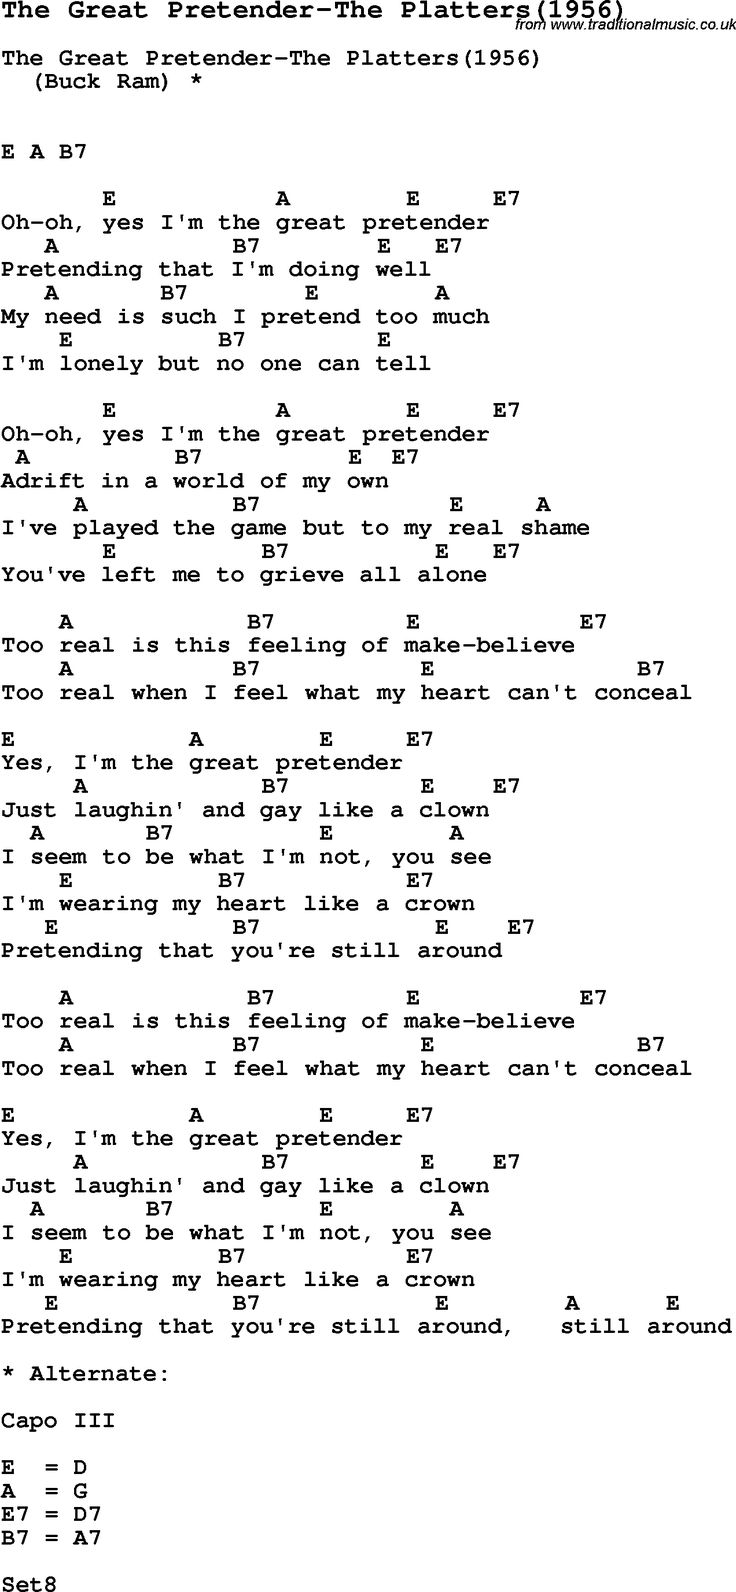 Song The Great Pretender-The Platters(1956), with lyrics for vocal performance and accompaniment ...